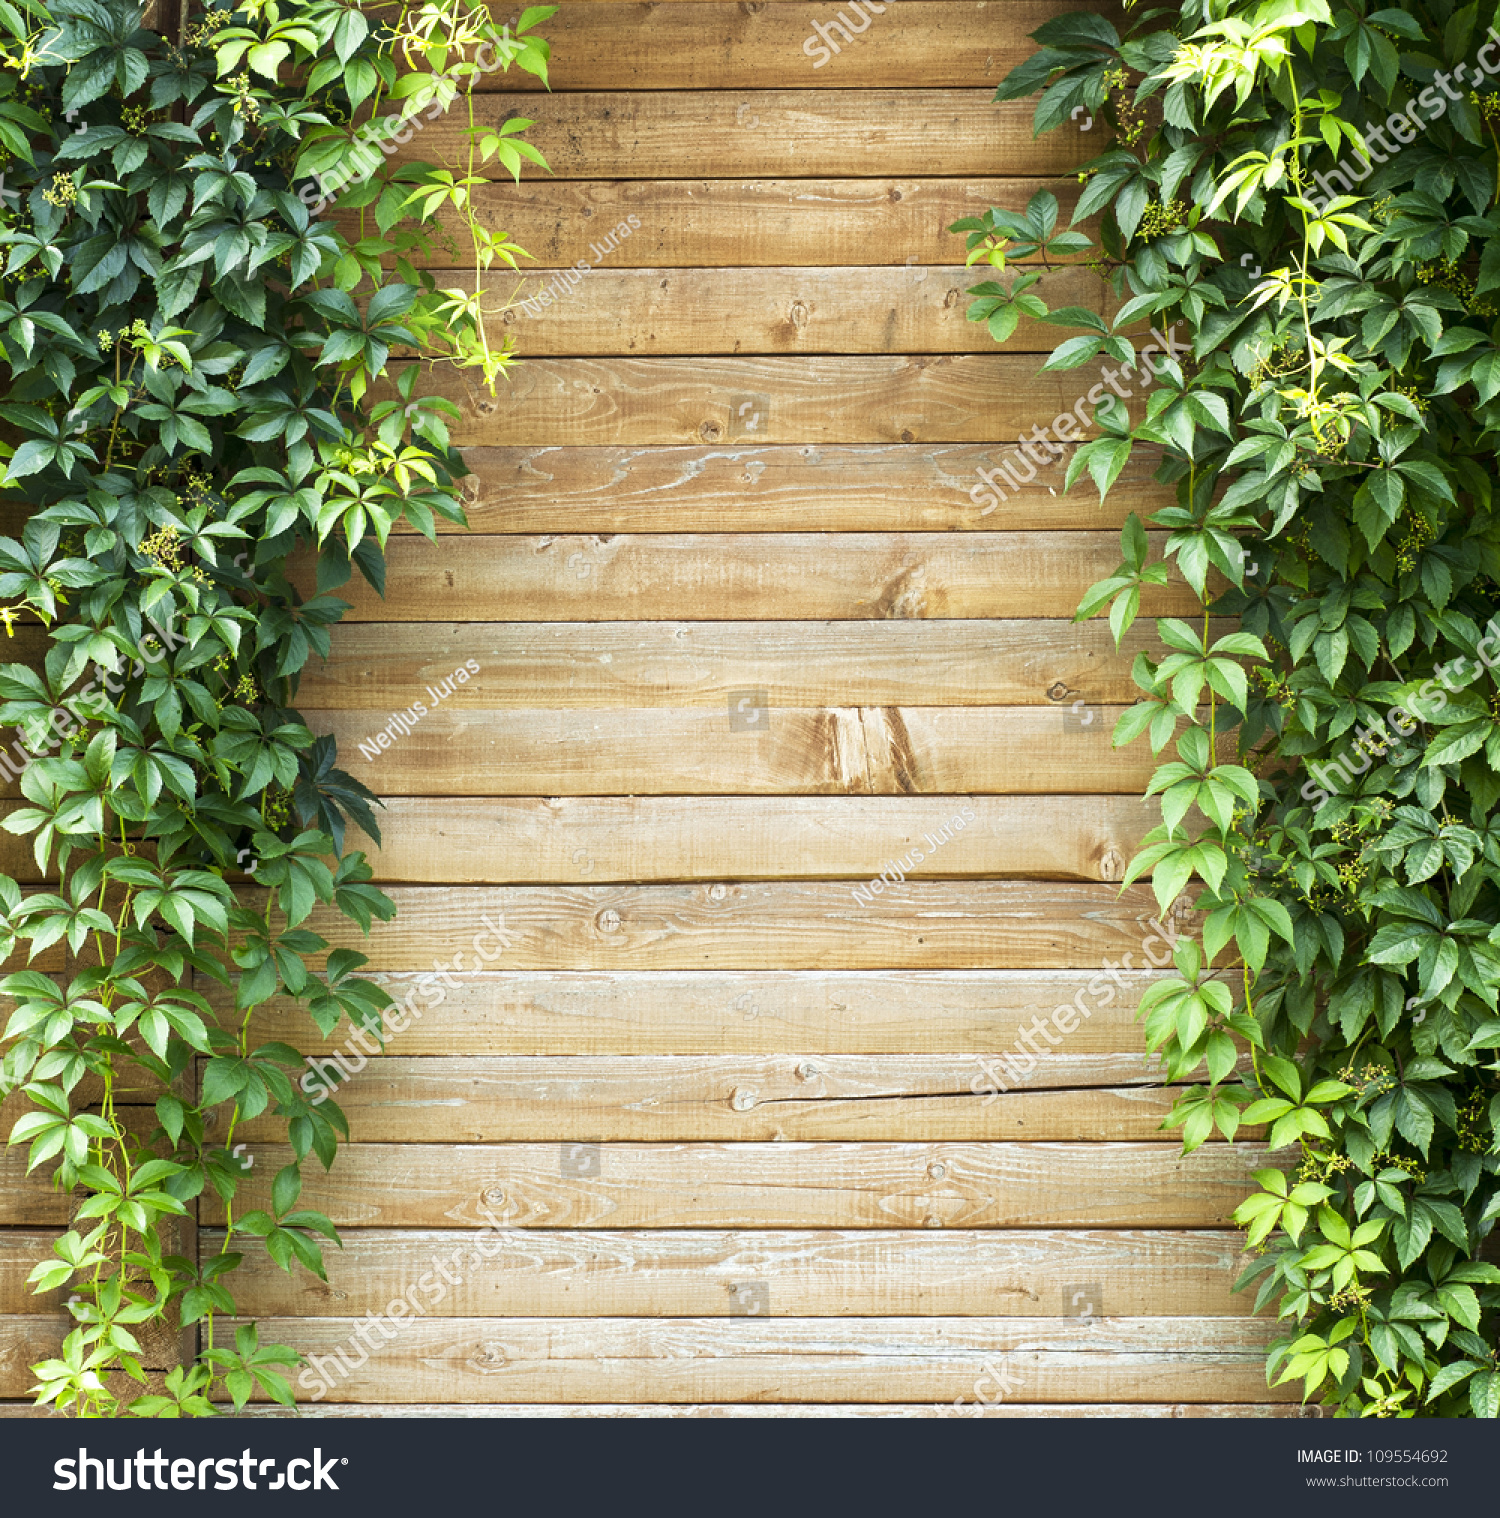 Green Creeper Plant Plank Wall Background Stock Photo & Image ...